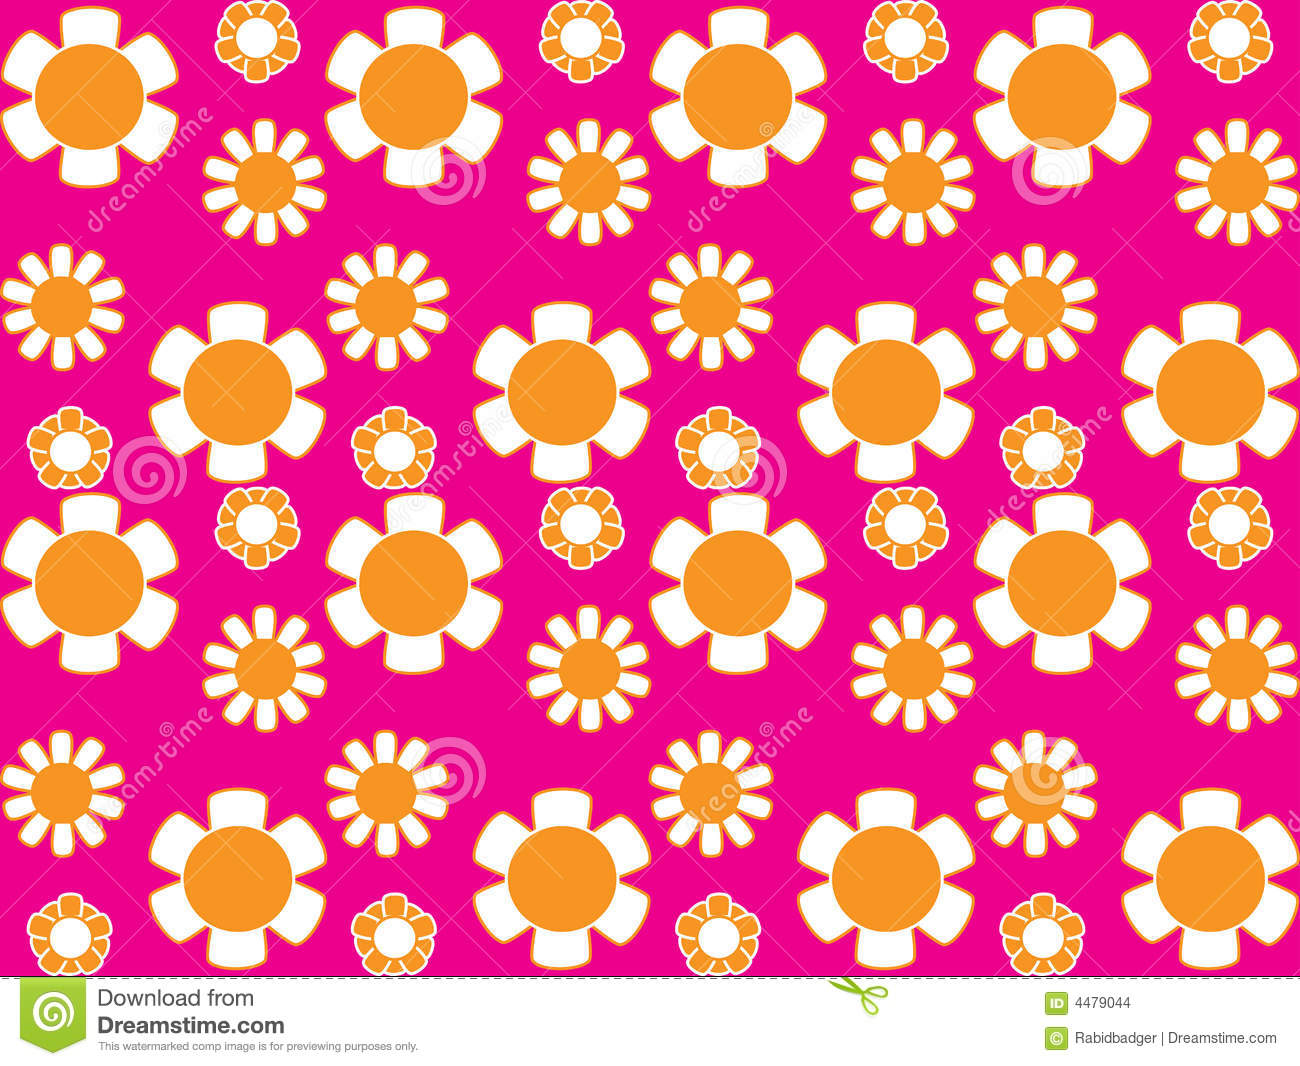 20s wallpaper 20 stock vector. Illustration of psychedelic   20207902020